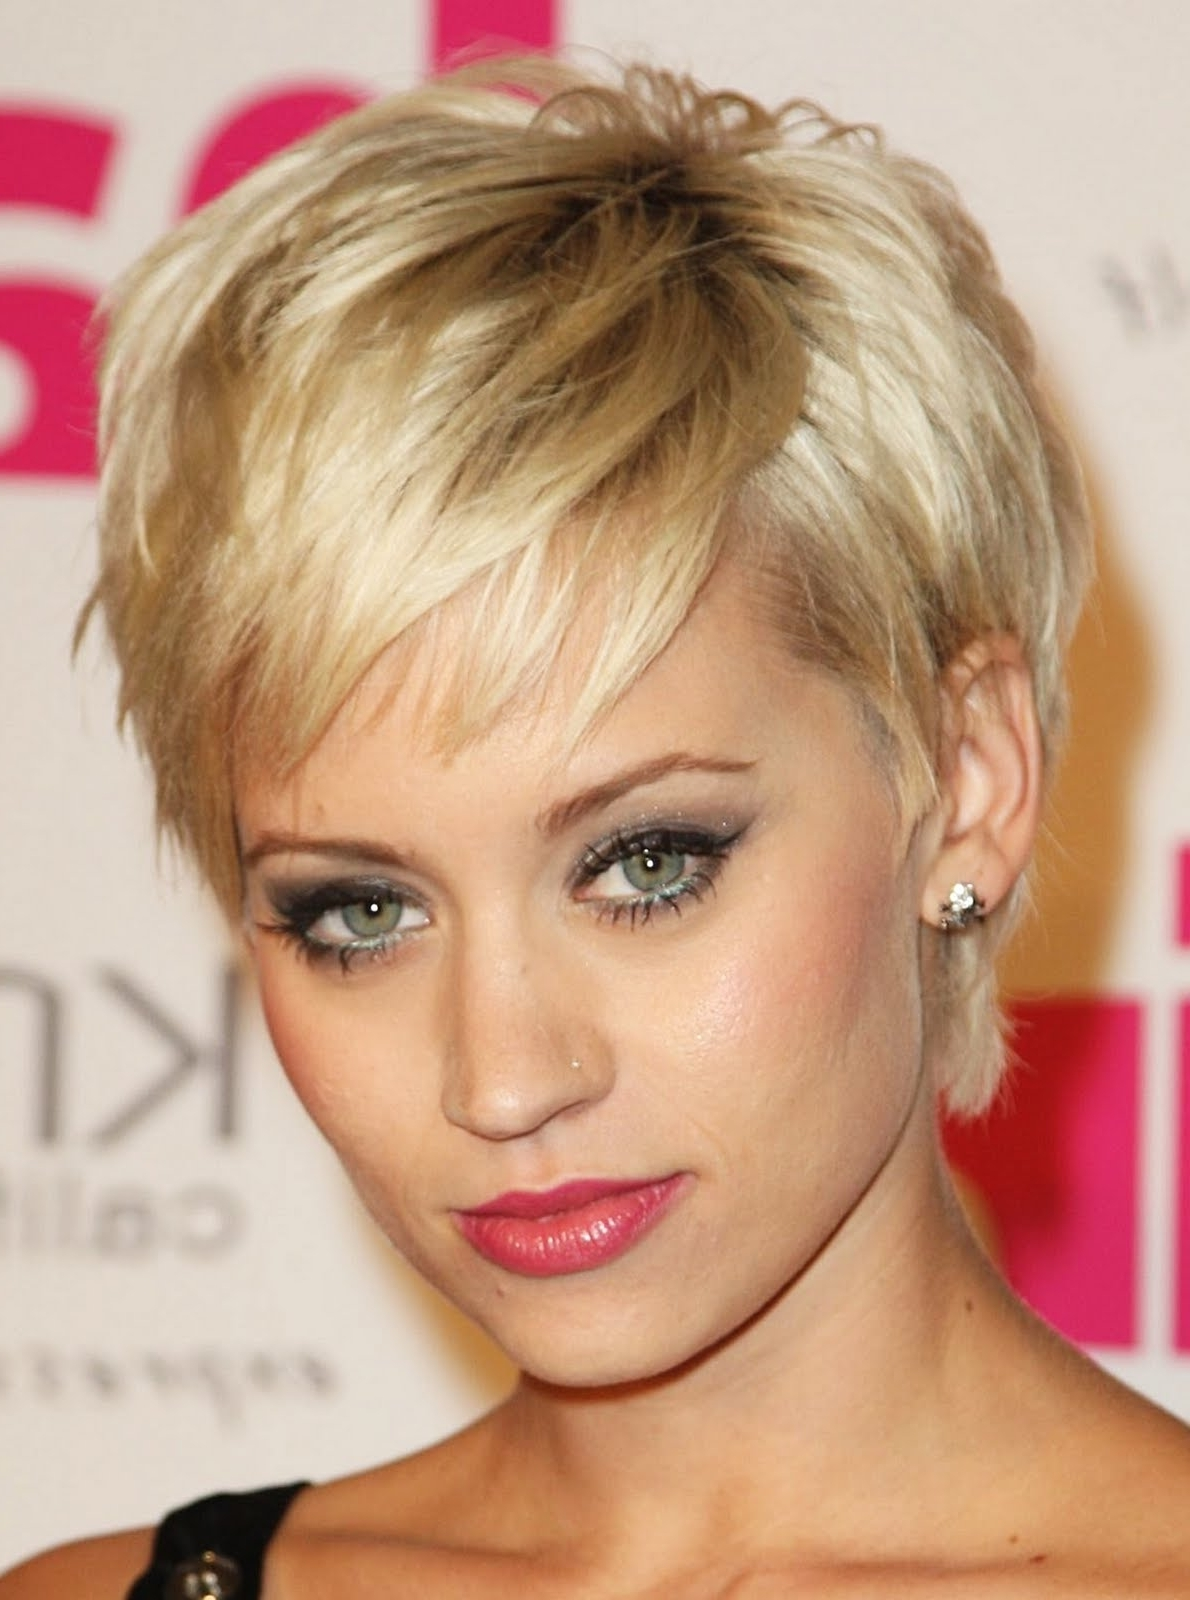 Long Pixie Haircut For Thin Hair Within Most Popular Pixie Hairstyles Styles For Thin Hair (View 7 of 15)